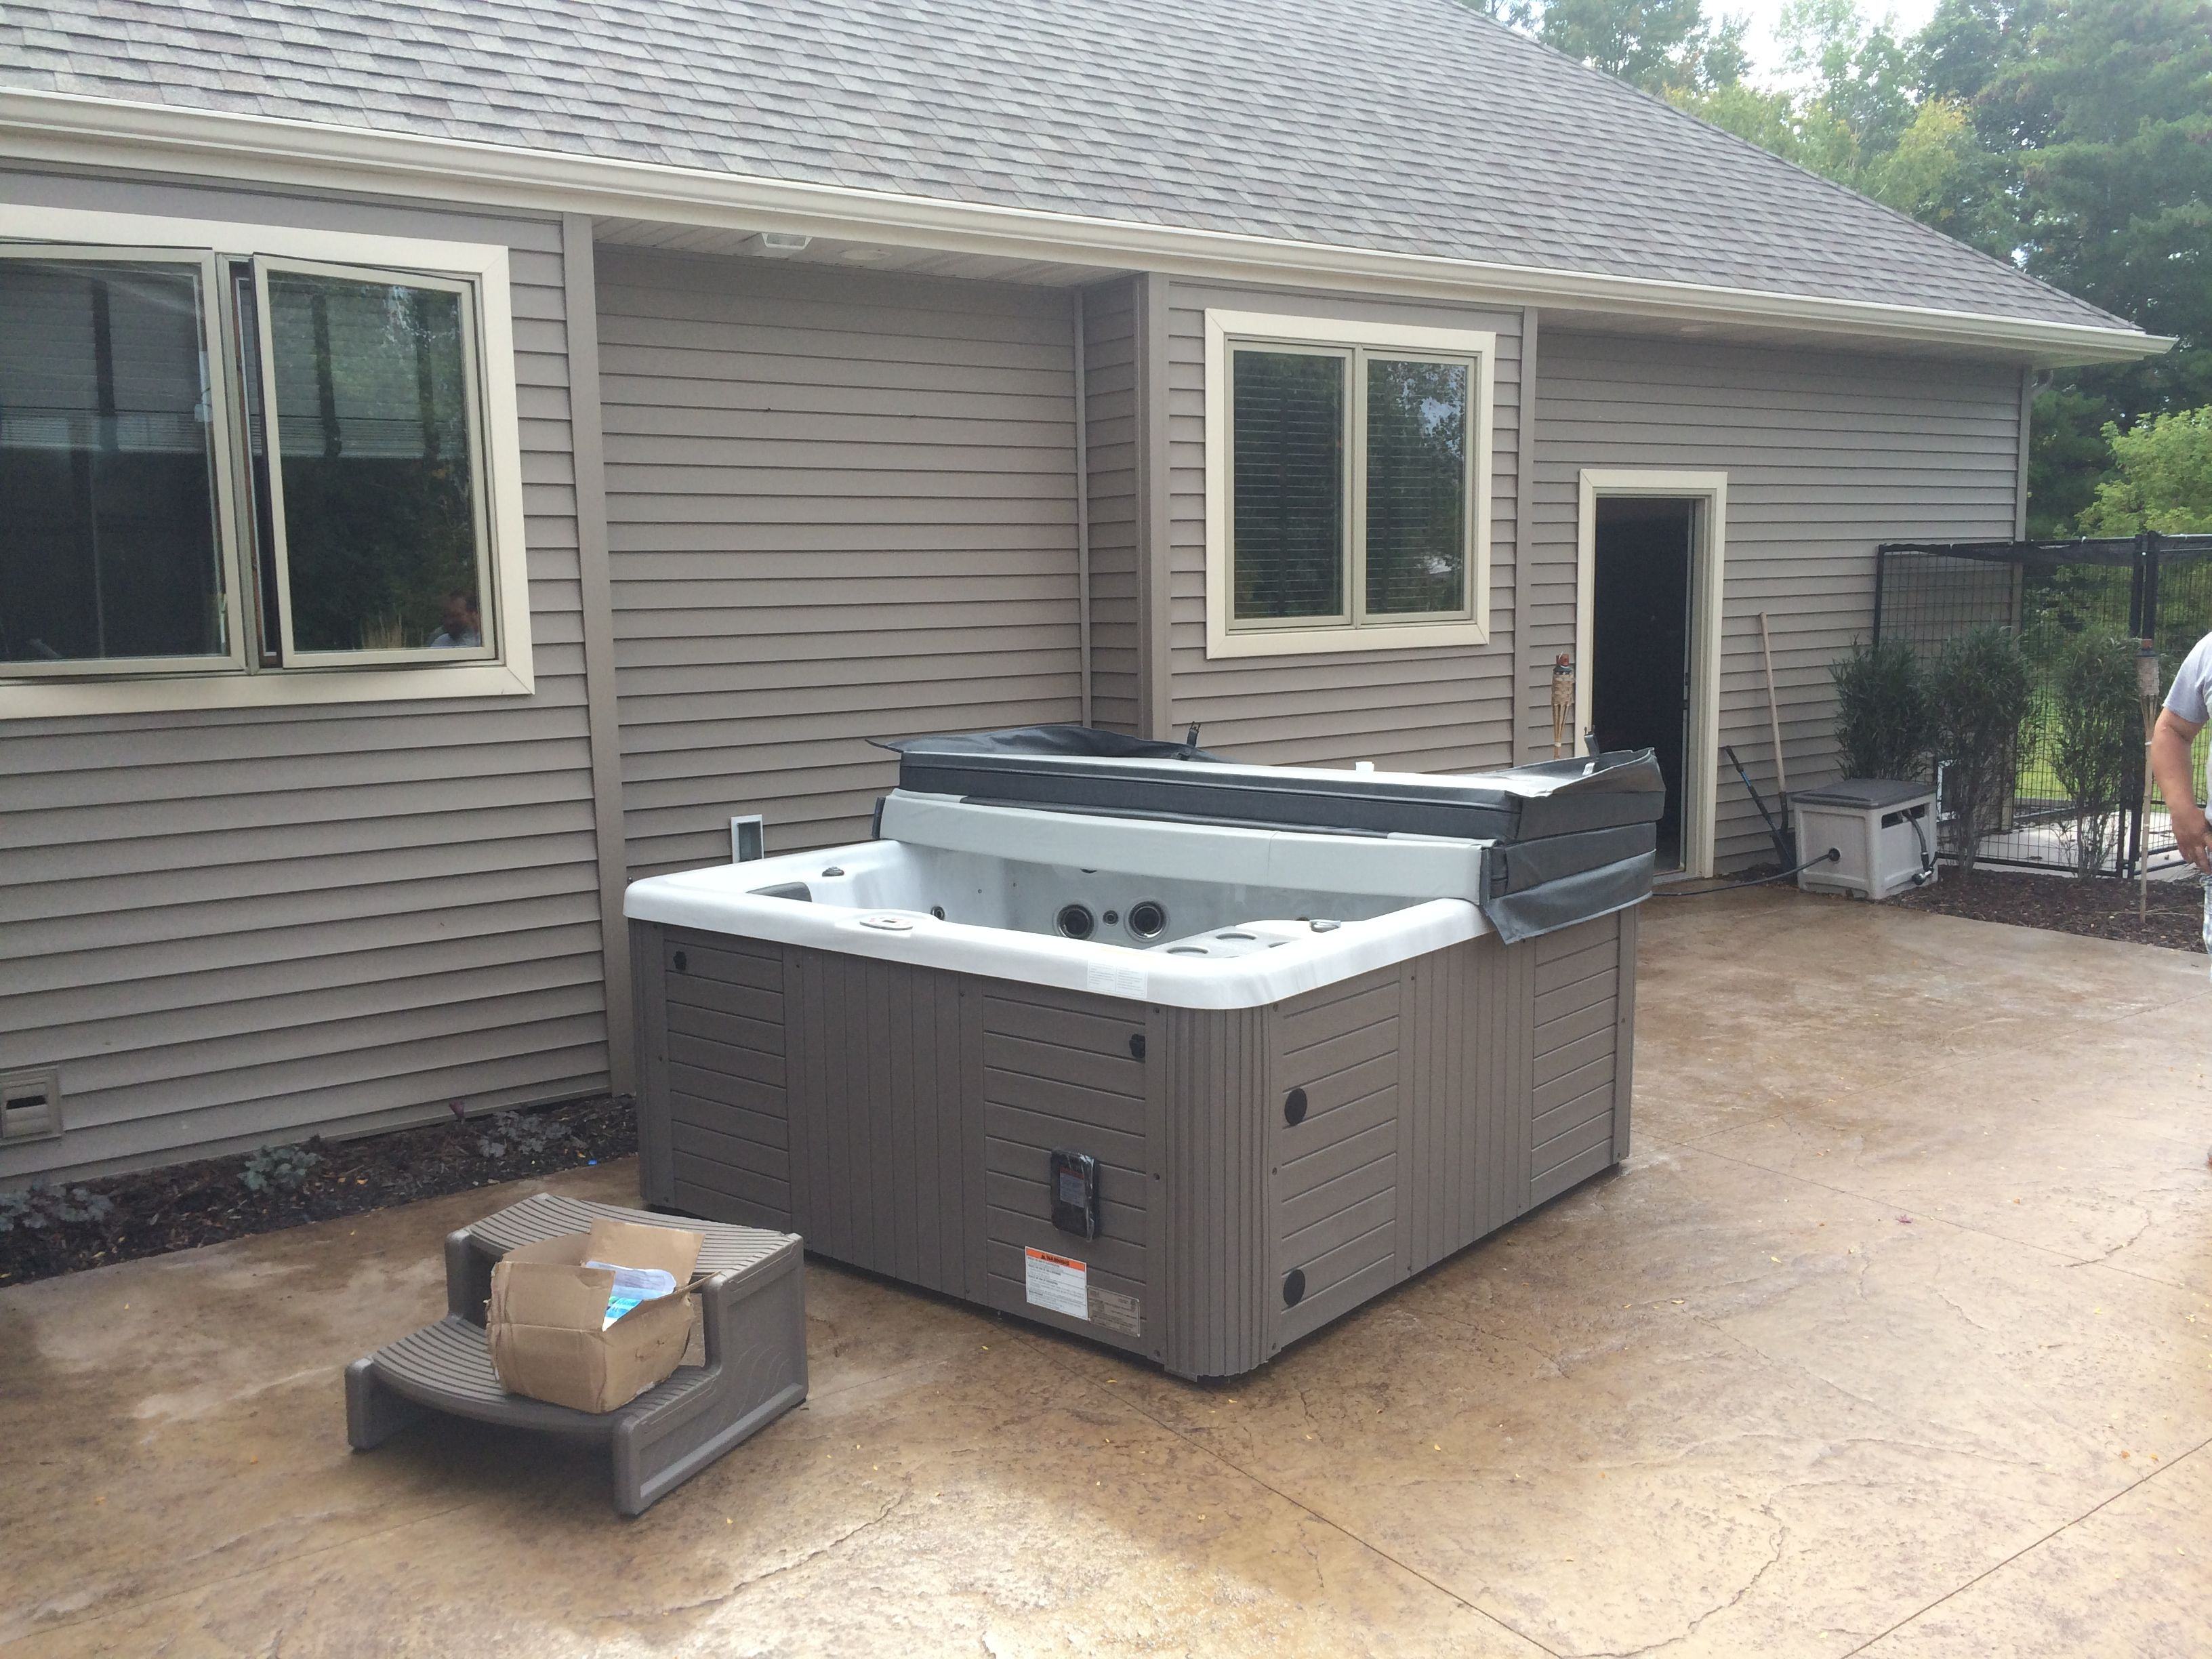 Here is a Master Spas Legacy spa installed on a concrete patio.